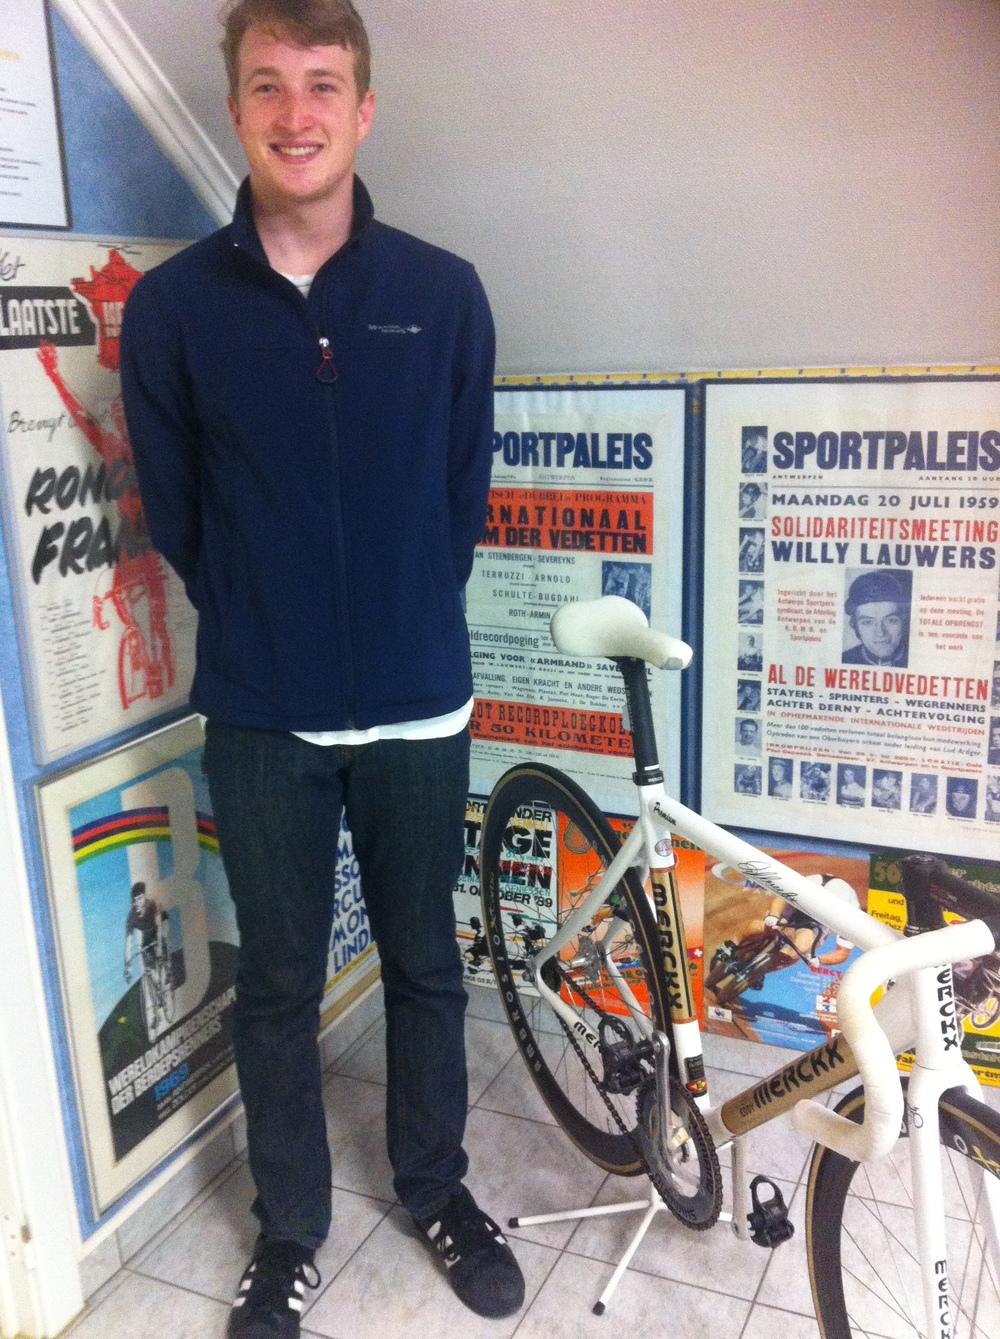 In amongst the countless posters was the last Eddy Merckx track bike used by Matthew Gilmore. Sweet.